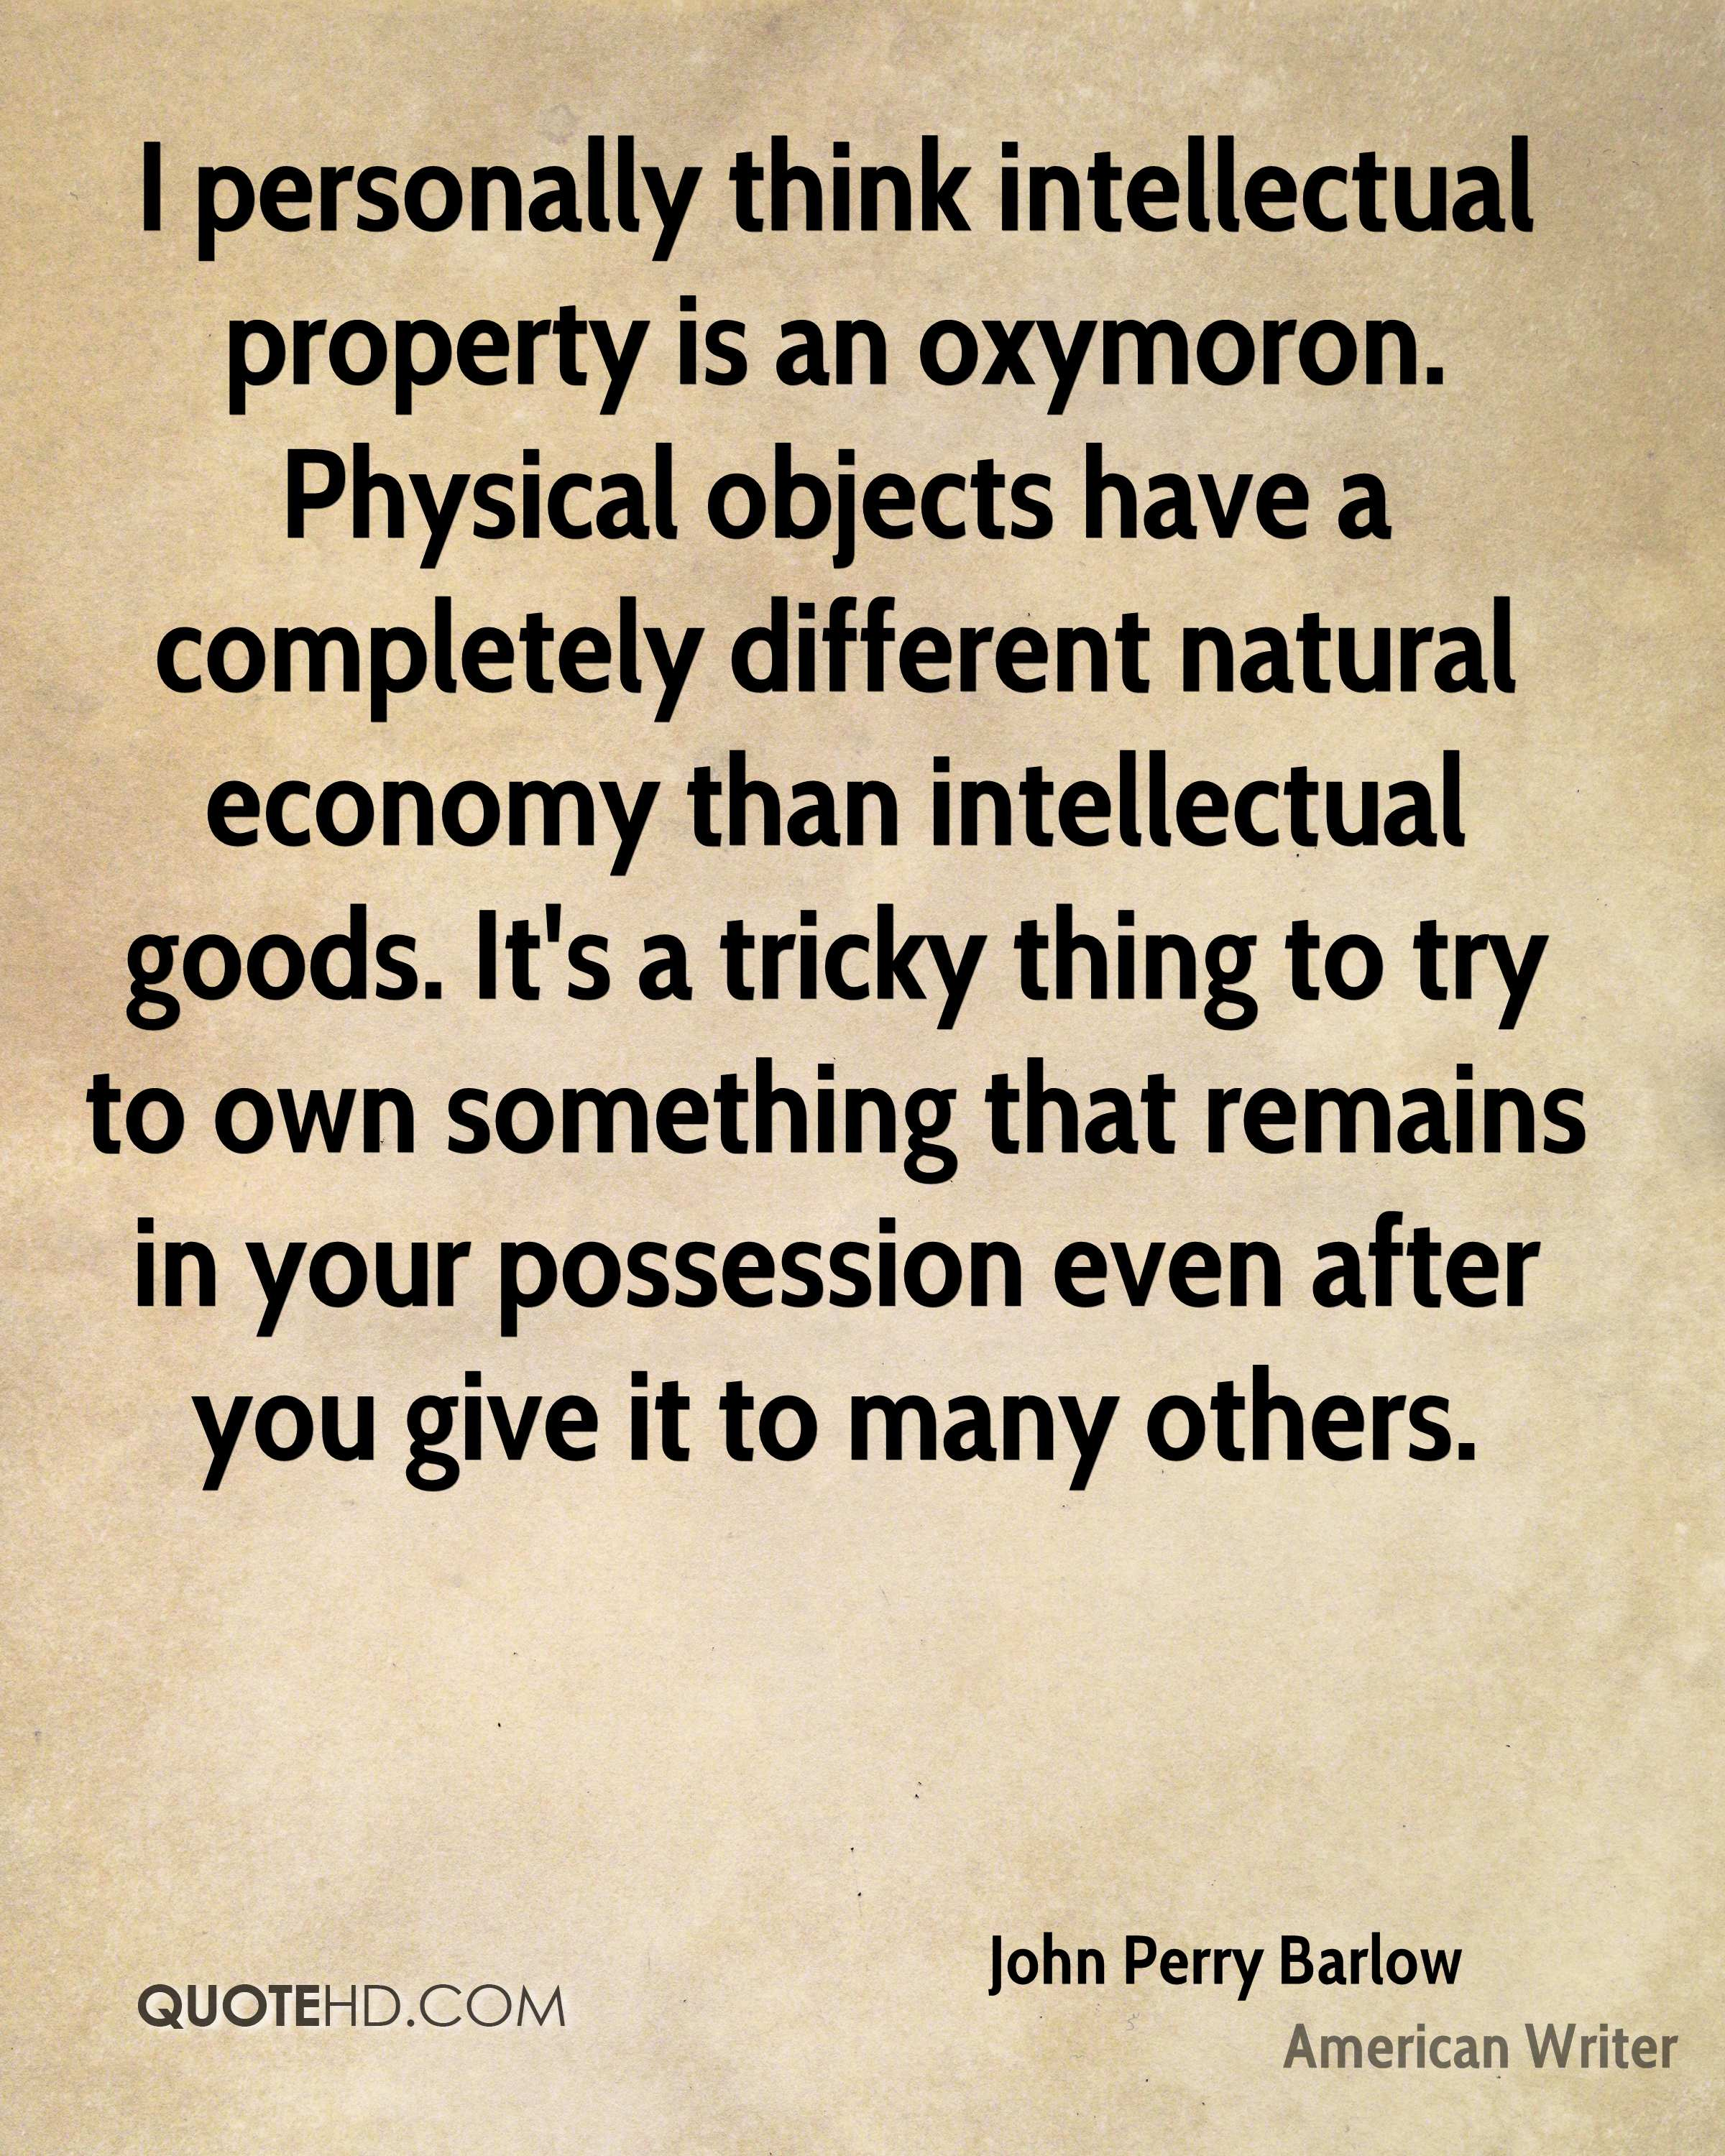 I personally think intellectual property is an oxymoron. Physical objects have a completely different natural economy than intellectual goods. It's a tricky thing to try to own something that remains in your possession even after you give it to many others.